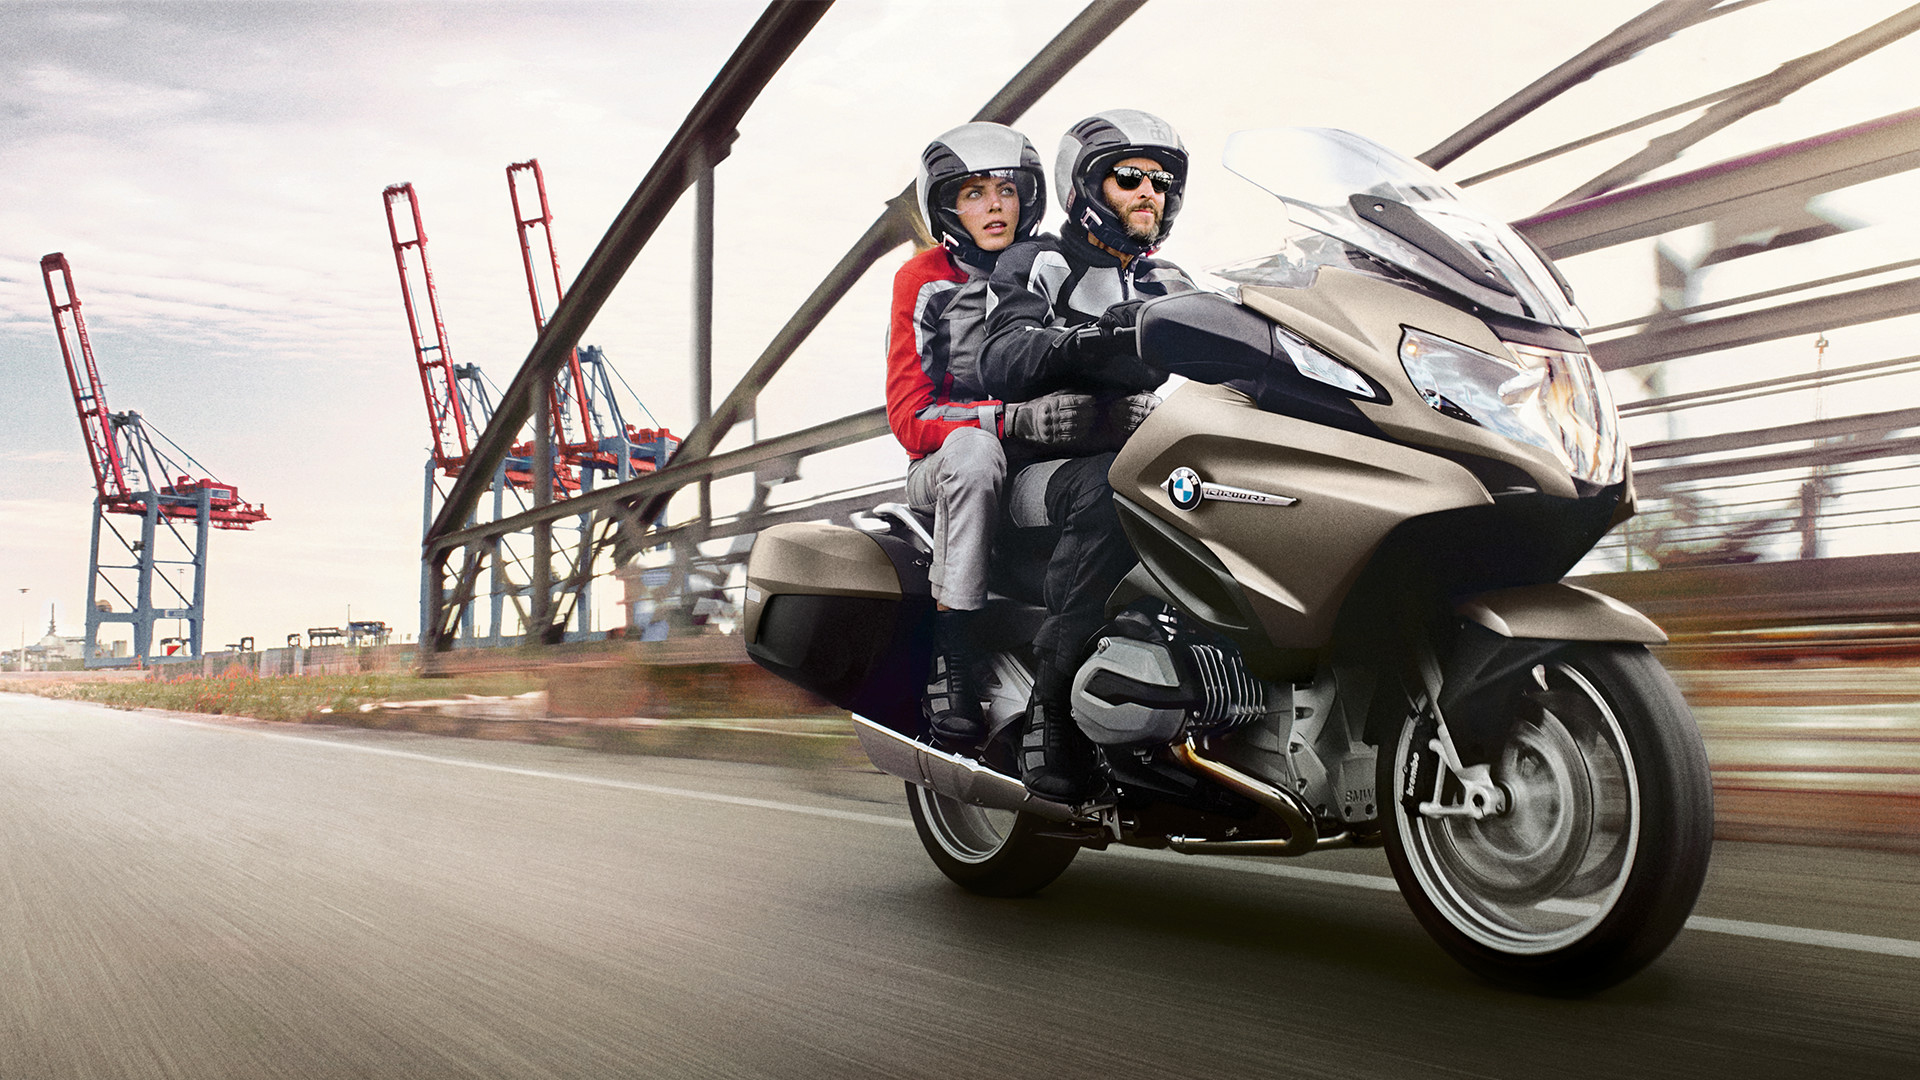 2014 2017 bmw r 1200 rt review gallery top speed. Black Bedroom Furniture Sets. Home Design Ideas